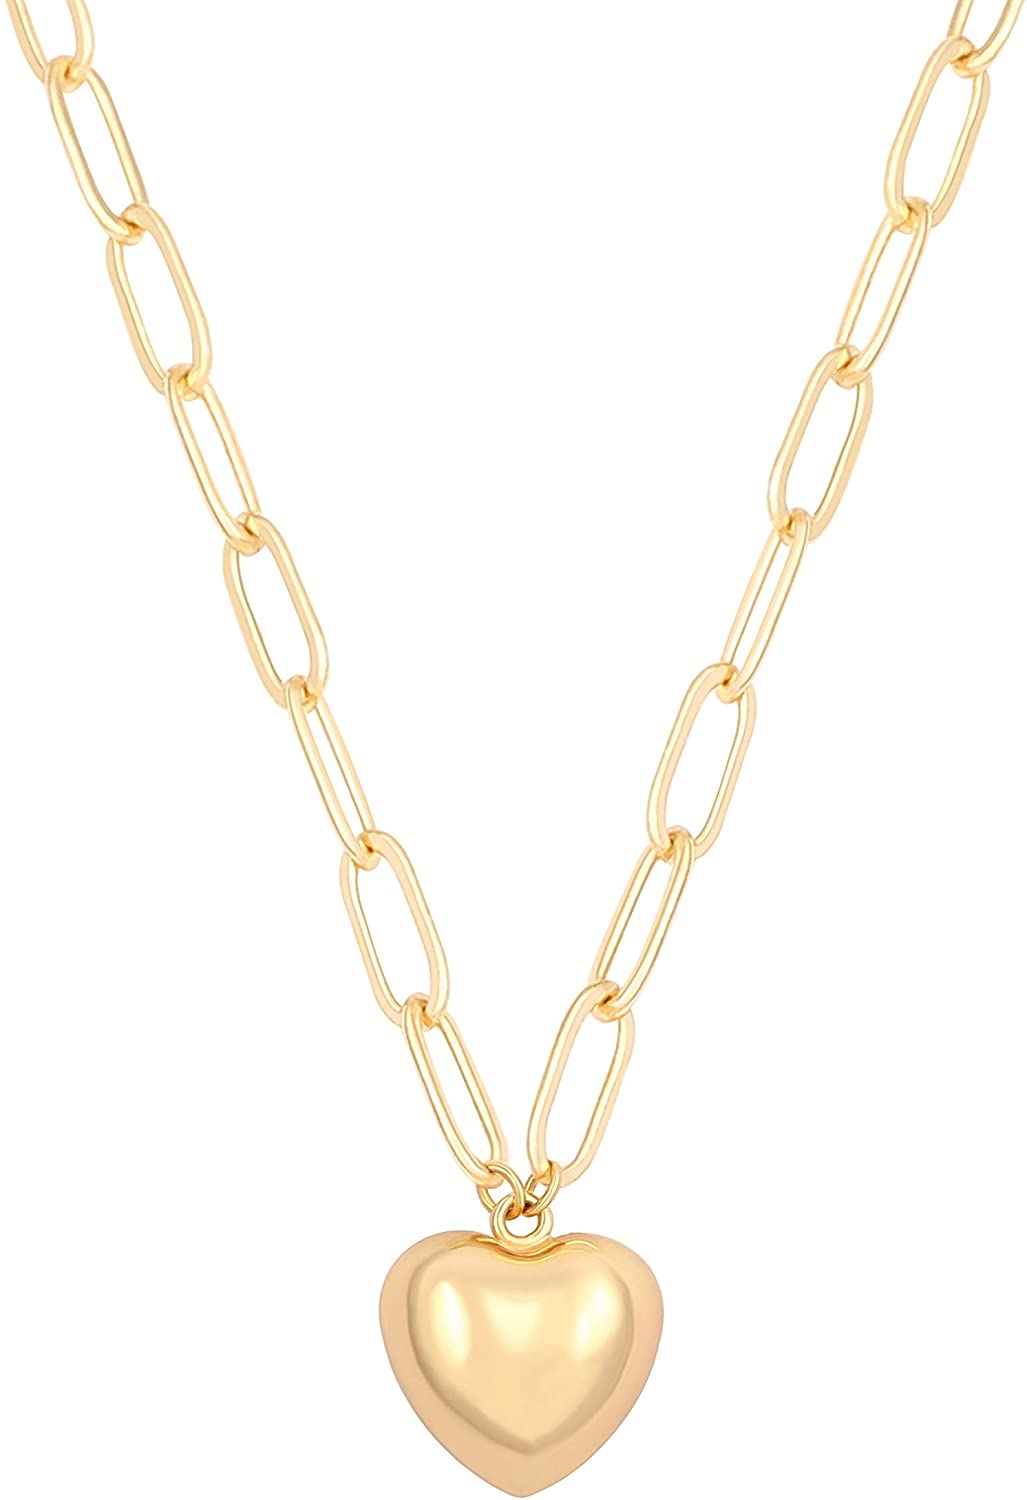 """AUSIKA 18K Gold Plated Heart Pendant Necklace for Women Dainty Layered Minimalist Jewelry Paperclip Link Chain Statement Necklaces 18"""""""